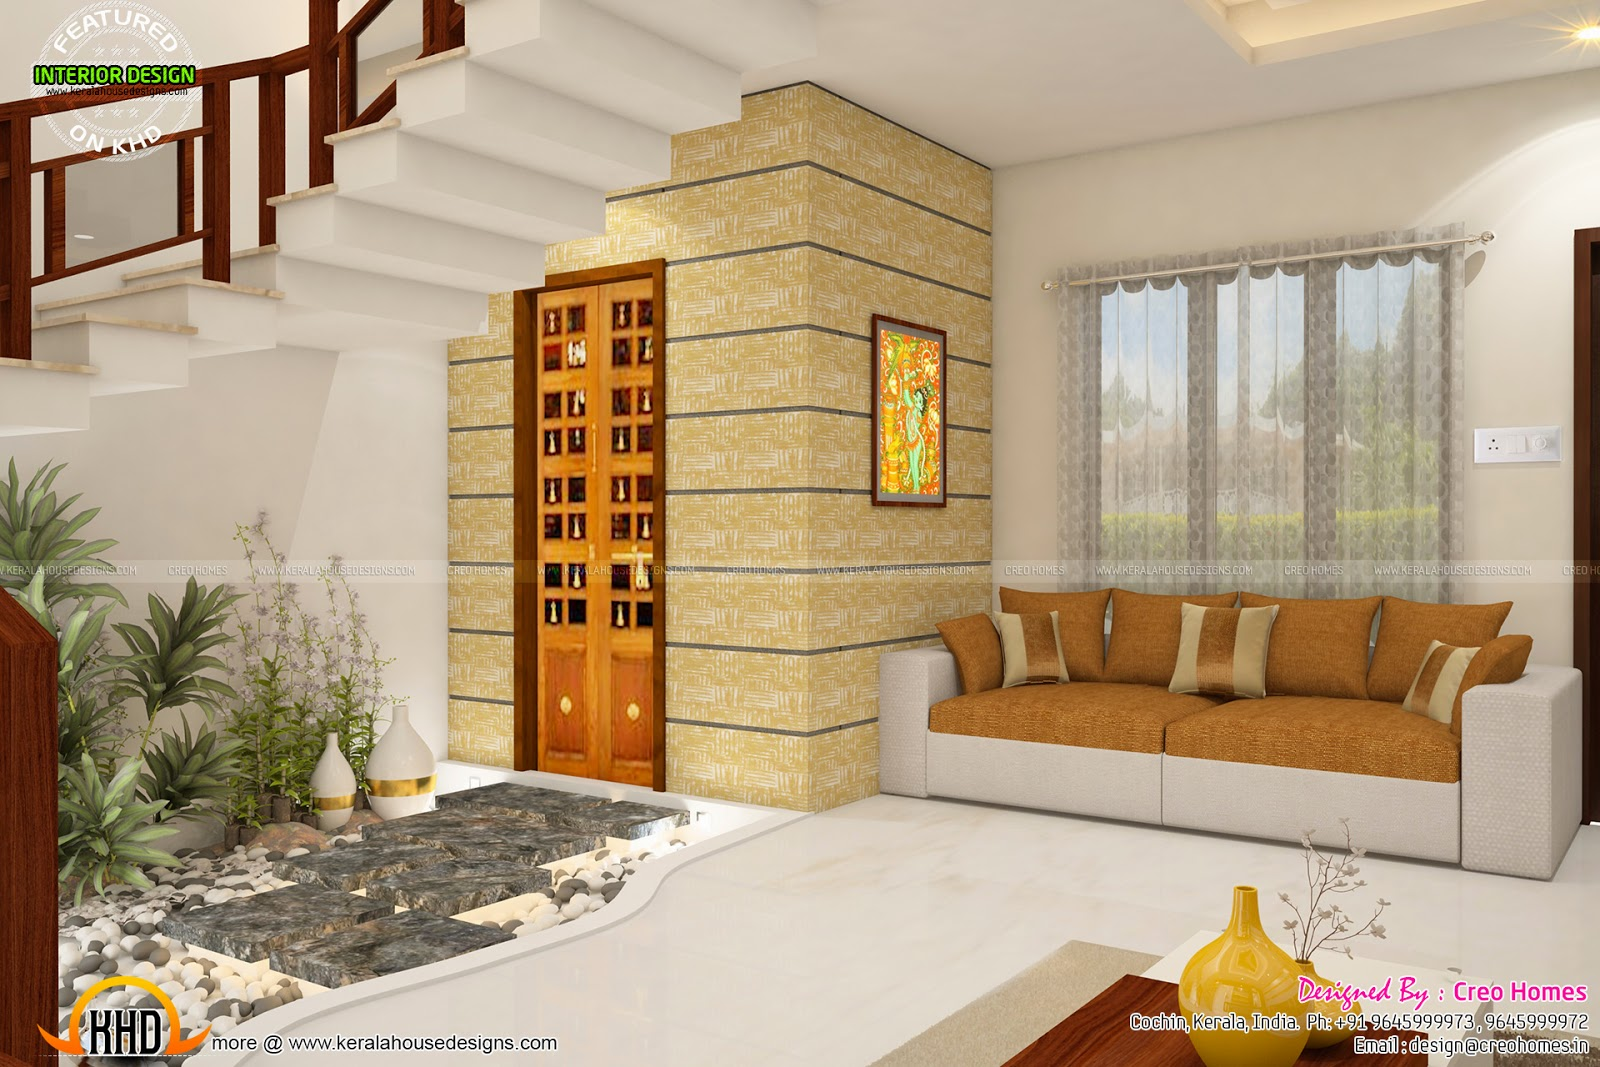 Total home interior solutions by creo homes kerala home for Interior design your home